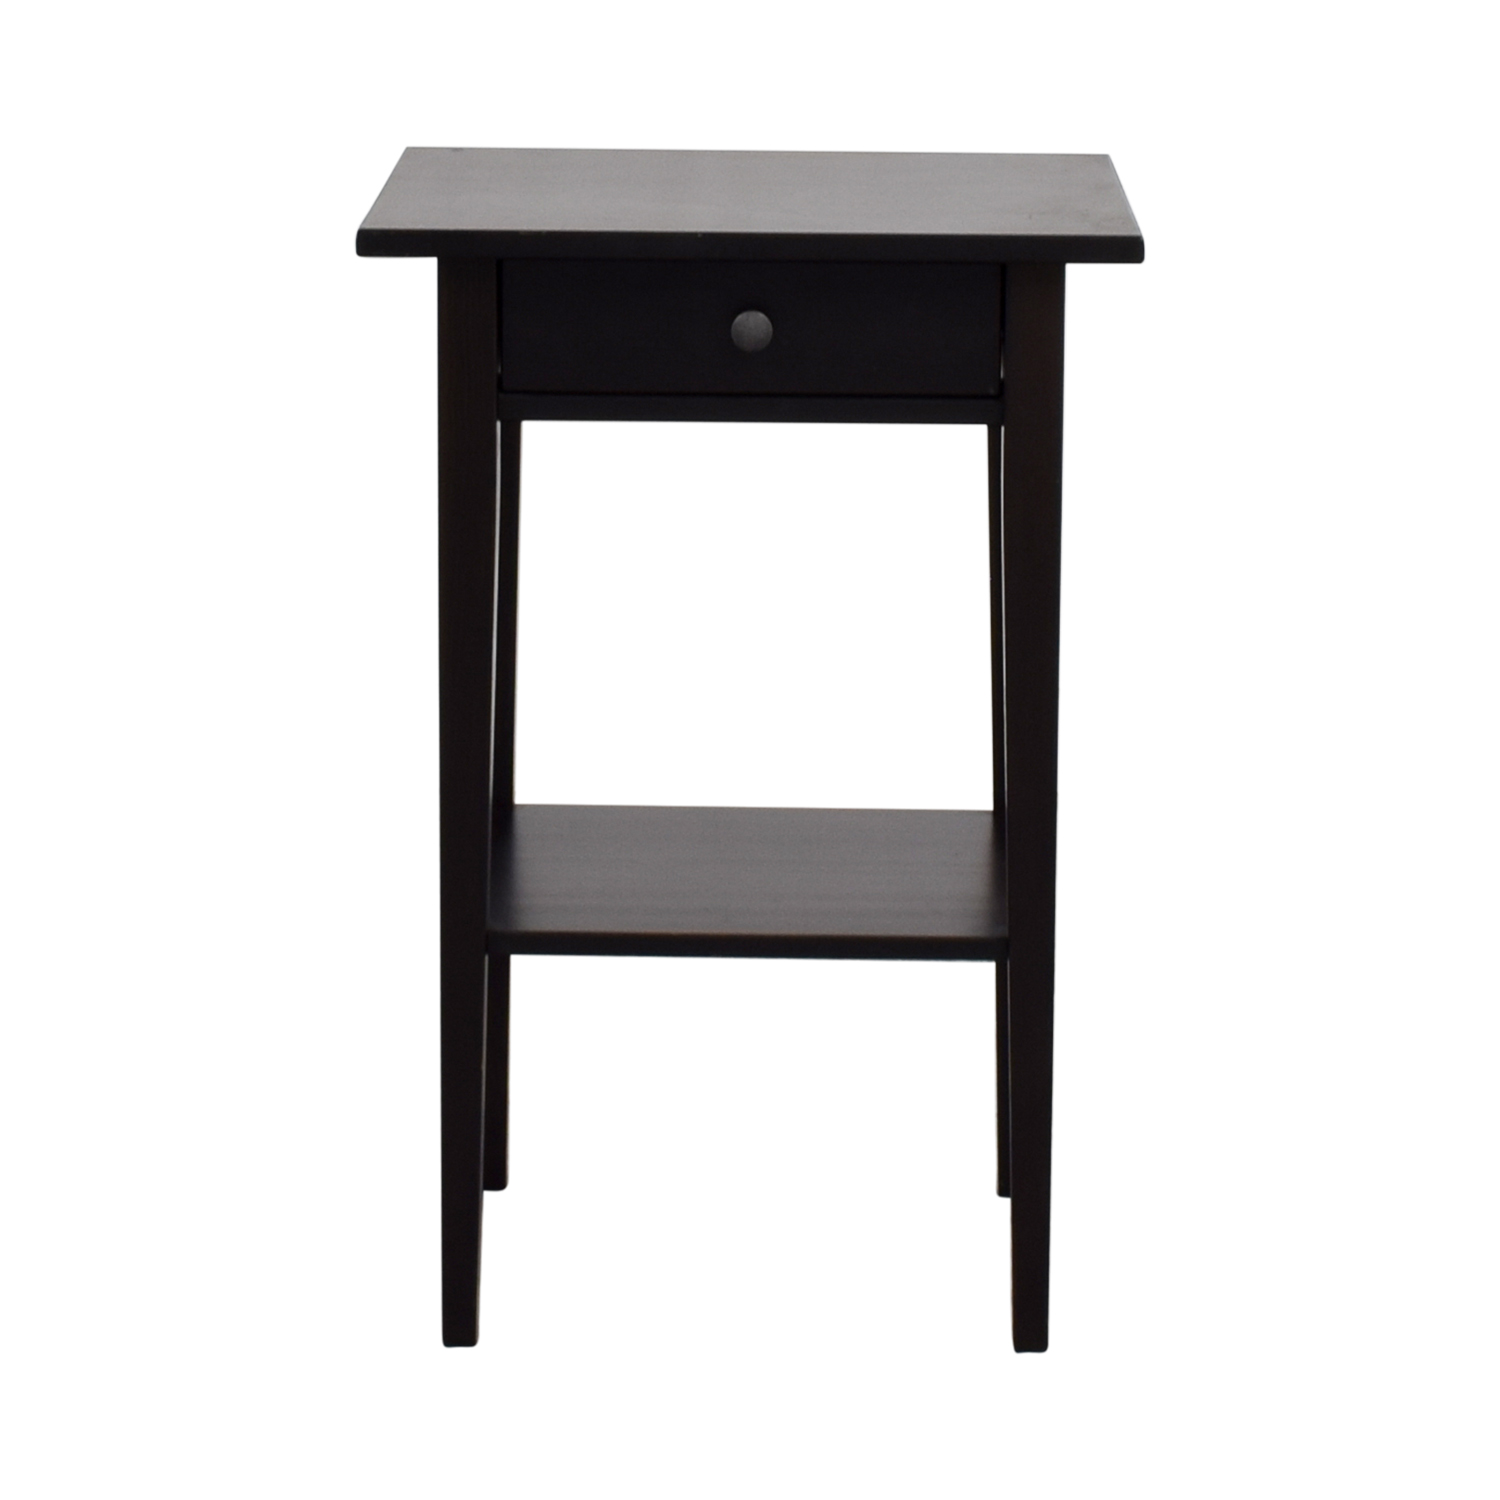 IKEA IKEA Brown Single-Drawer Nightstand price